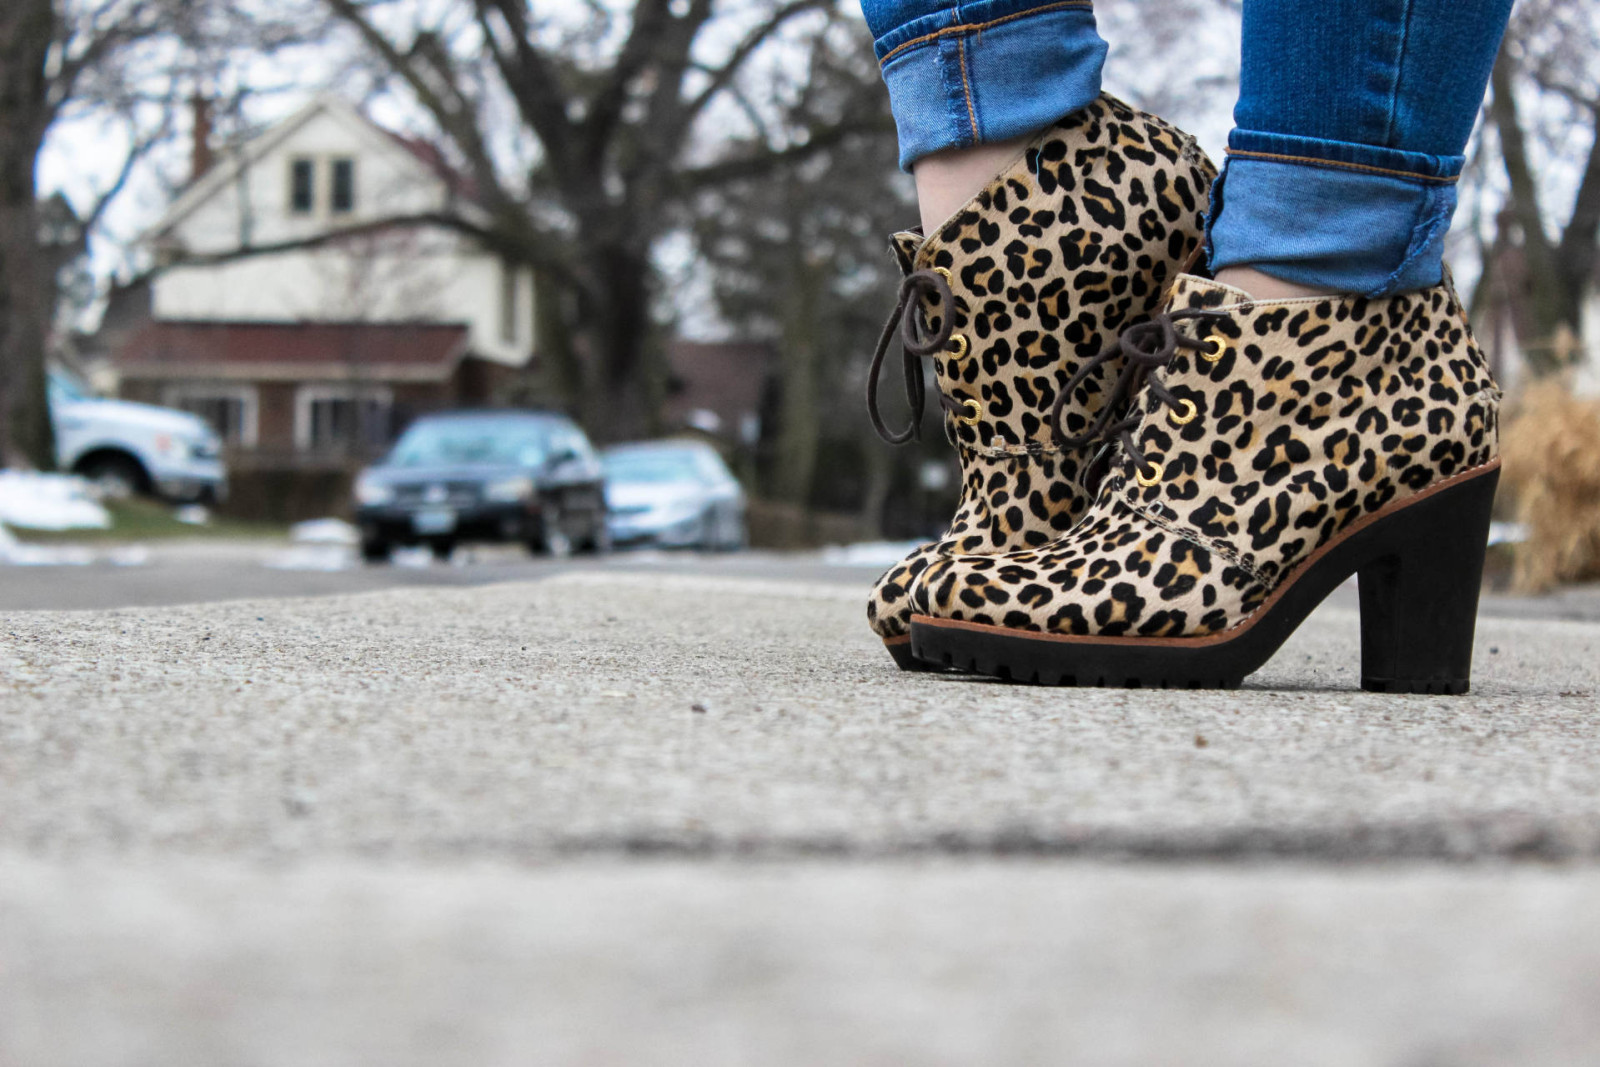 Leopard Booties + Velvet Turtleneck - Pearls and Polkadots